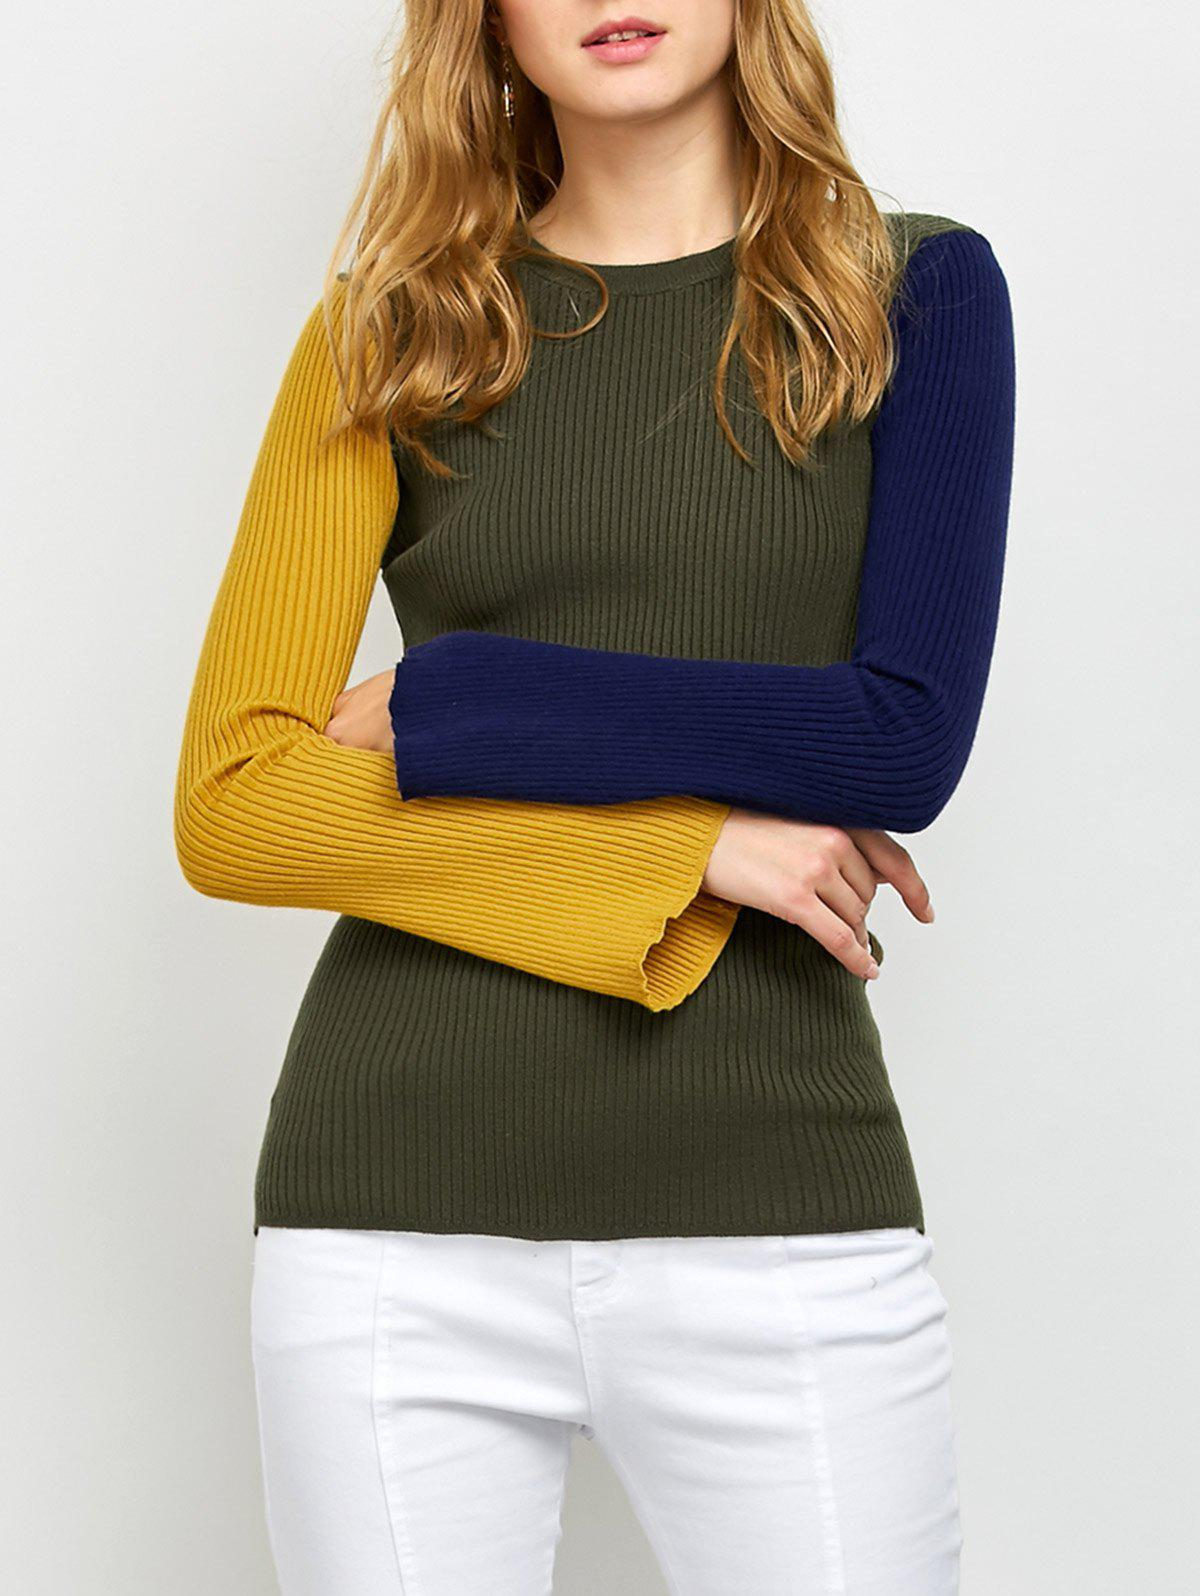 Ribbed Color Block SweaterWomen<br><br><br>Size: ONE SIZE<br>Color: ARMY GREEN